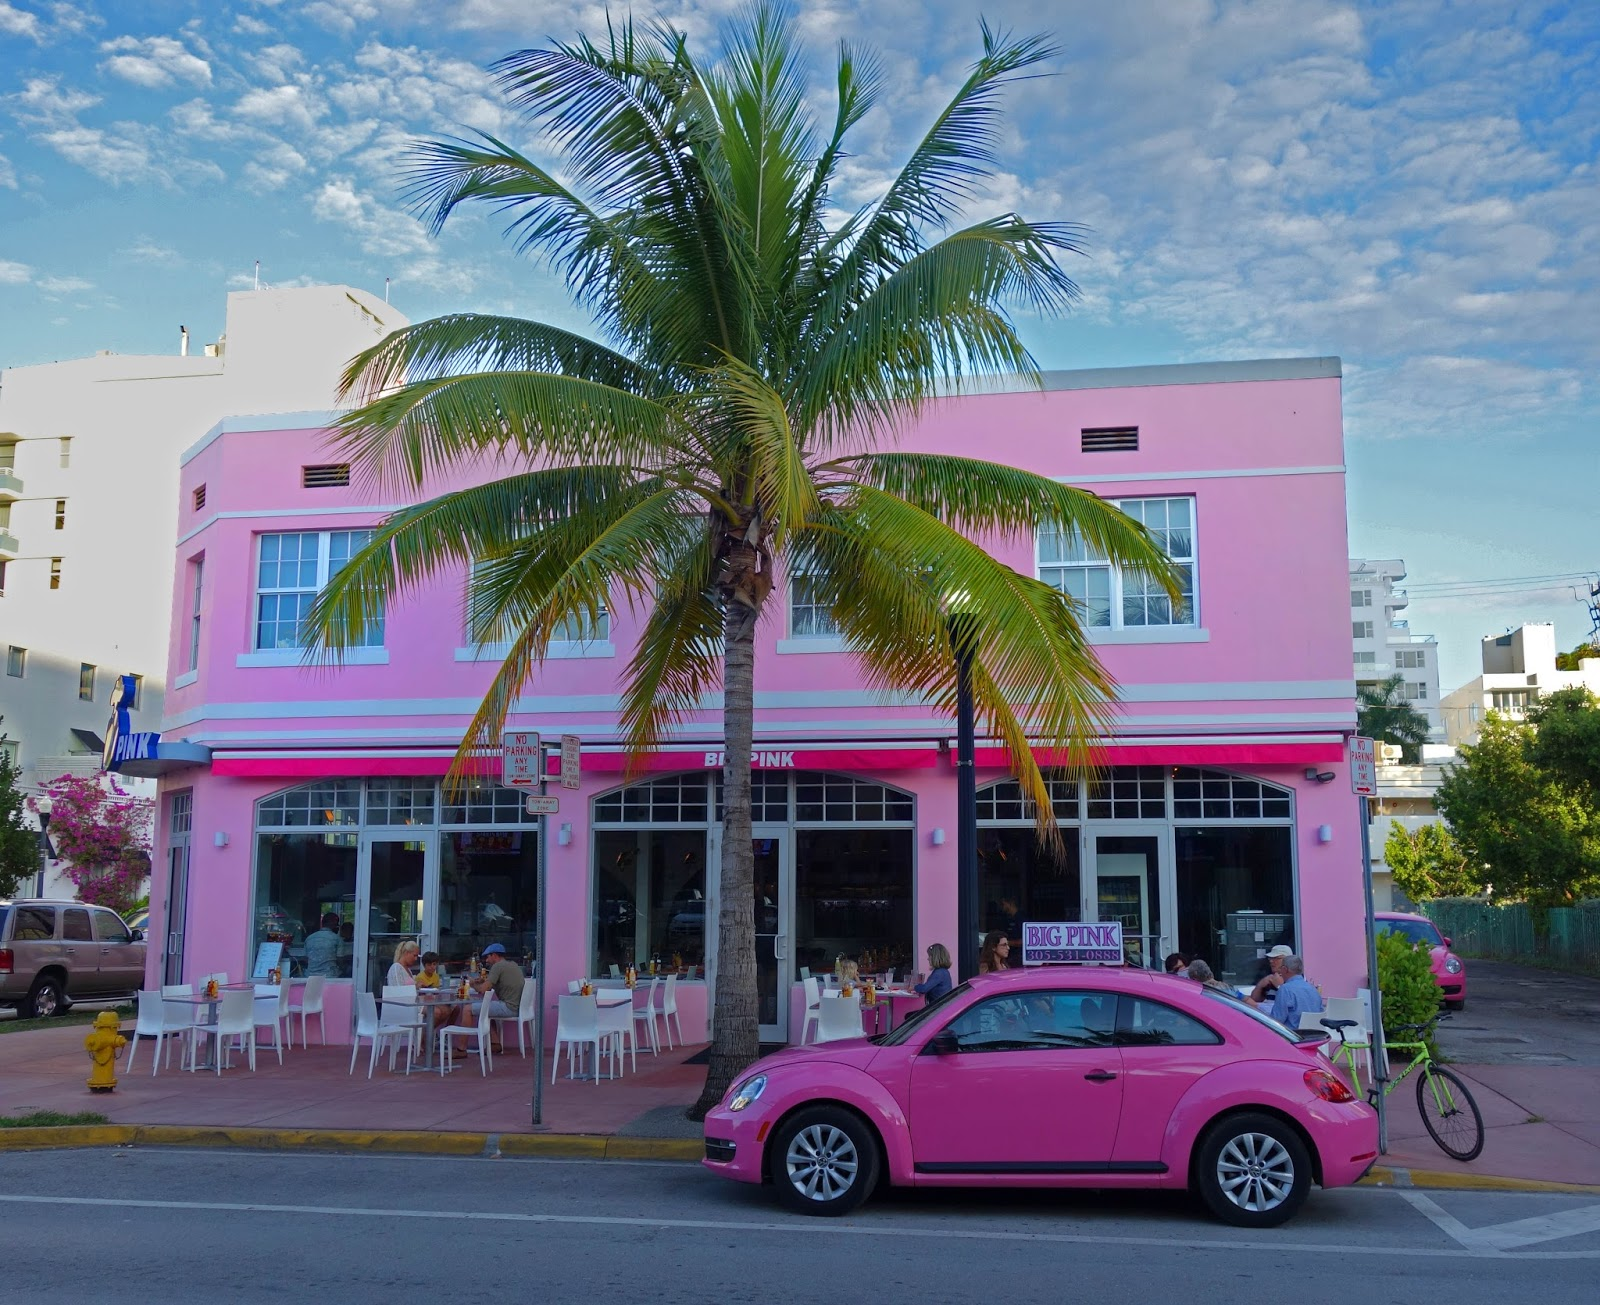 Joeu0026#39;s Retirement Blog: Late Afternoon in South Beach ...